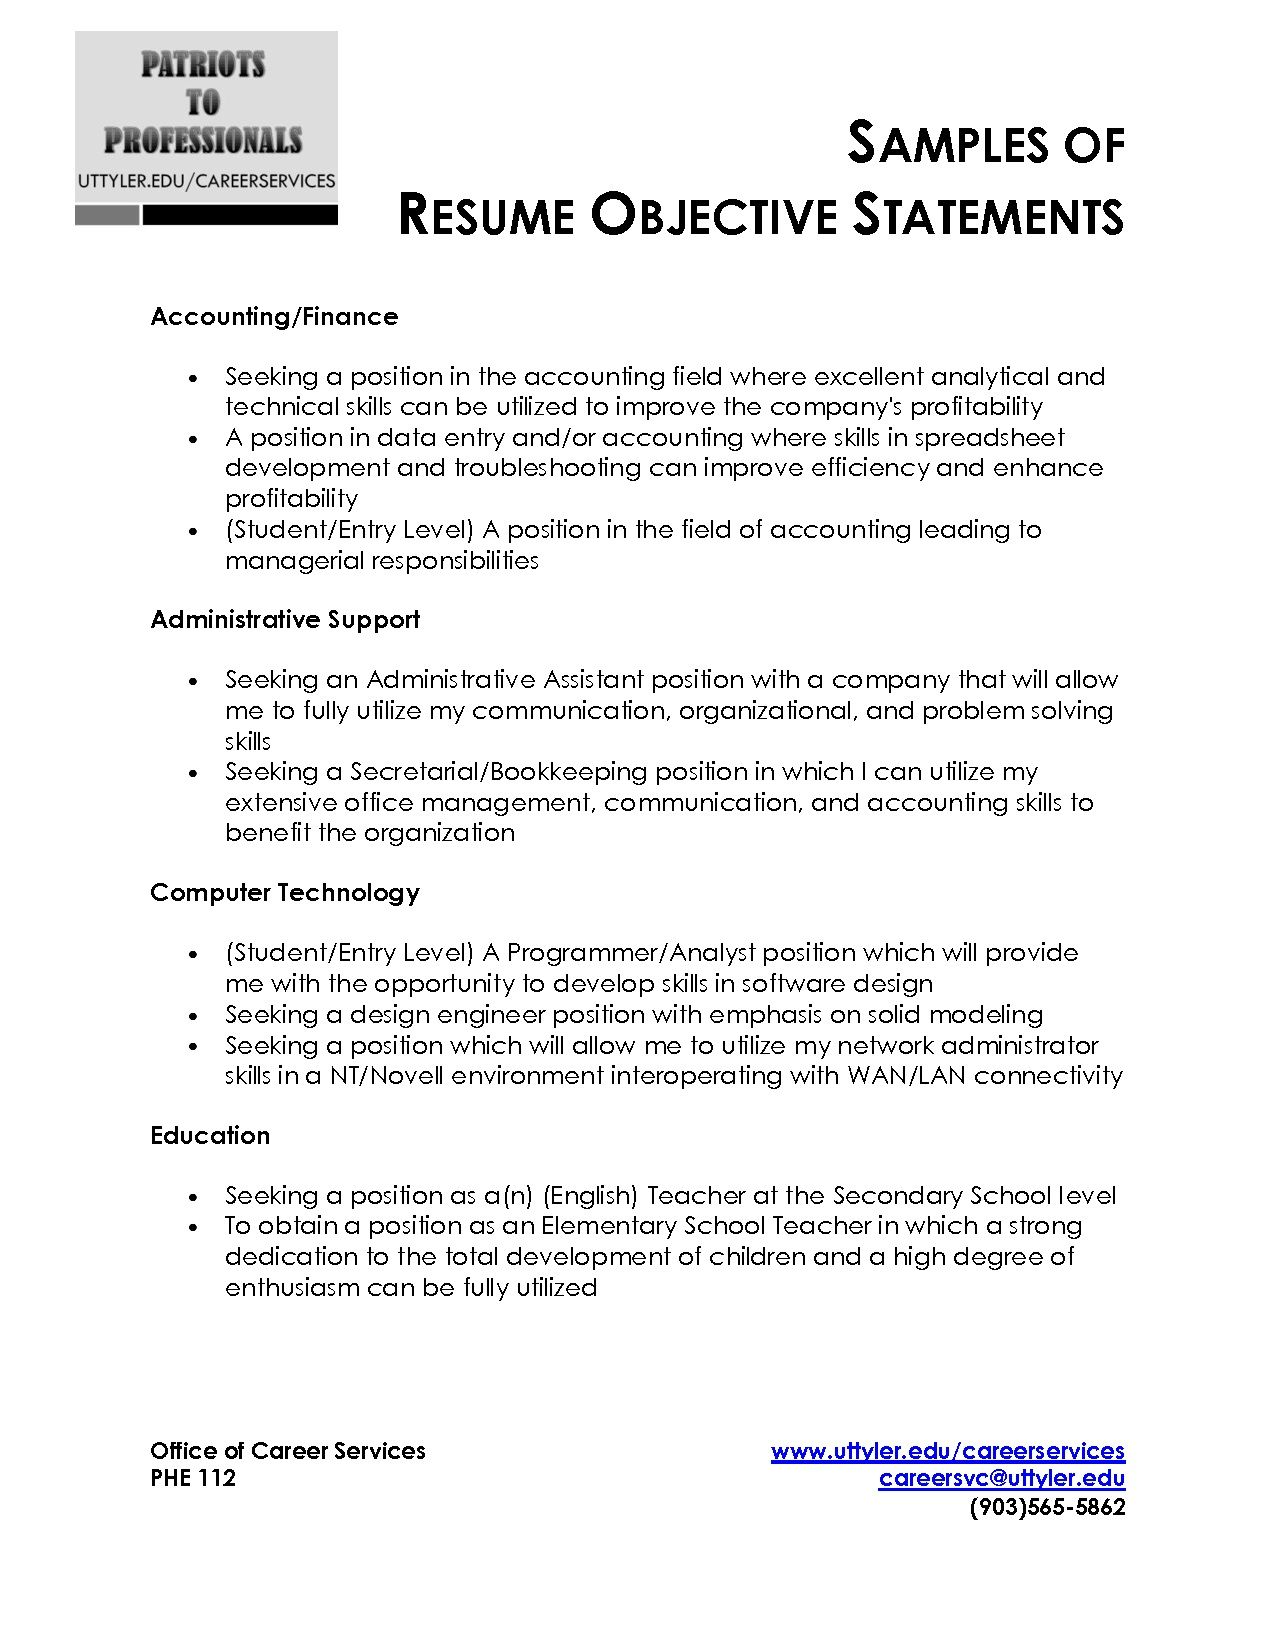 Good Objective Statement For Resume Examples Pin By Rachel Franco On Resume Writing Sample Resume